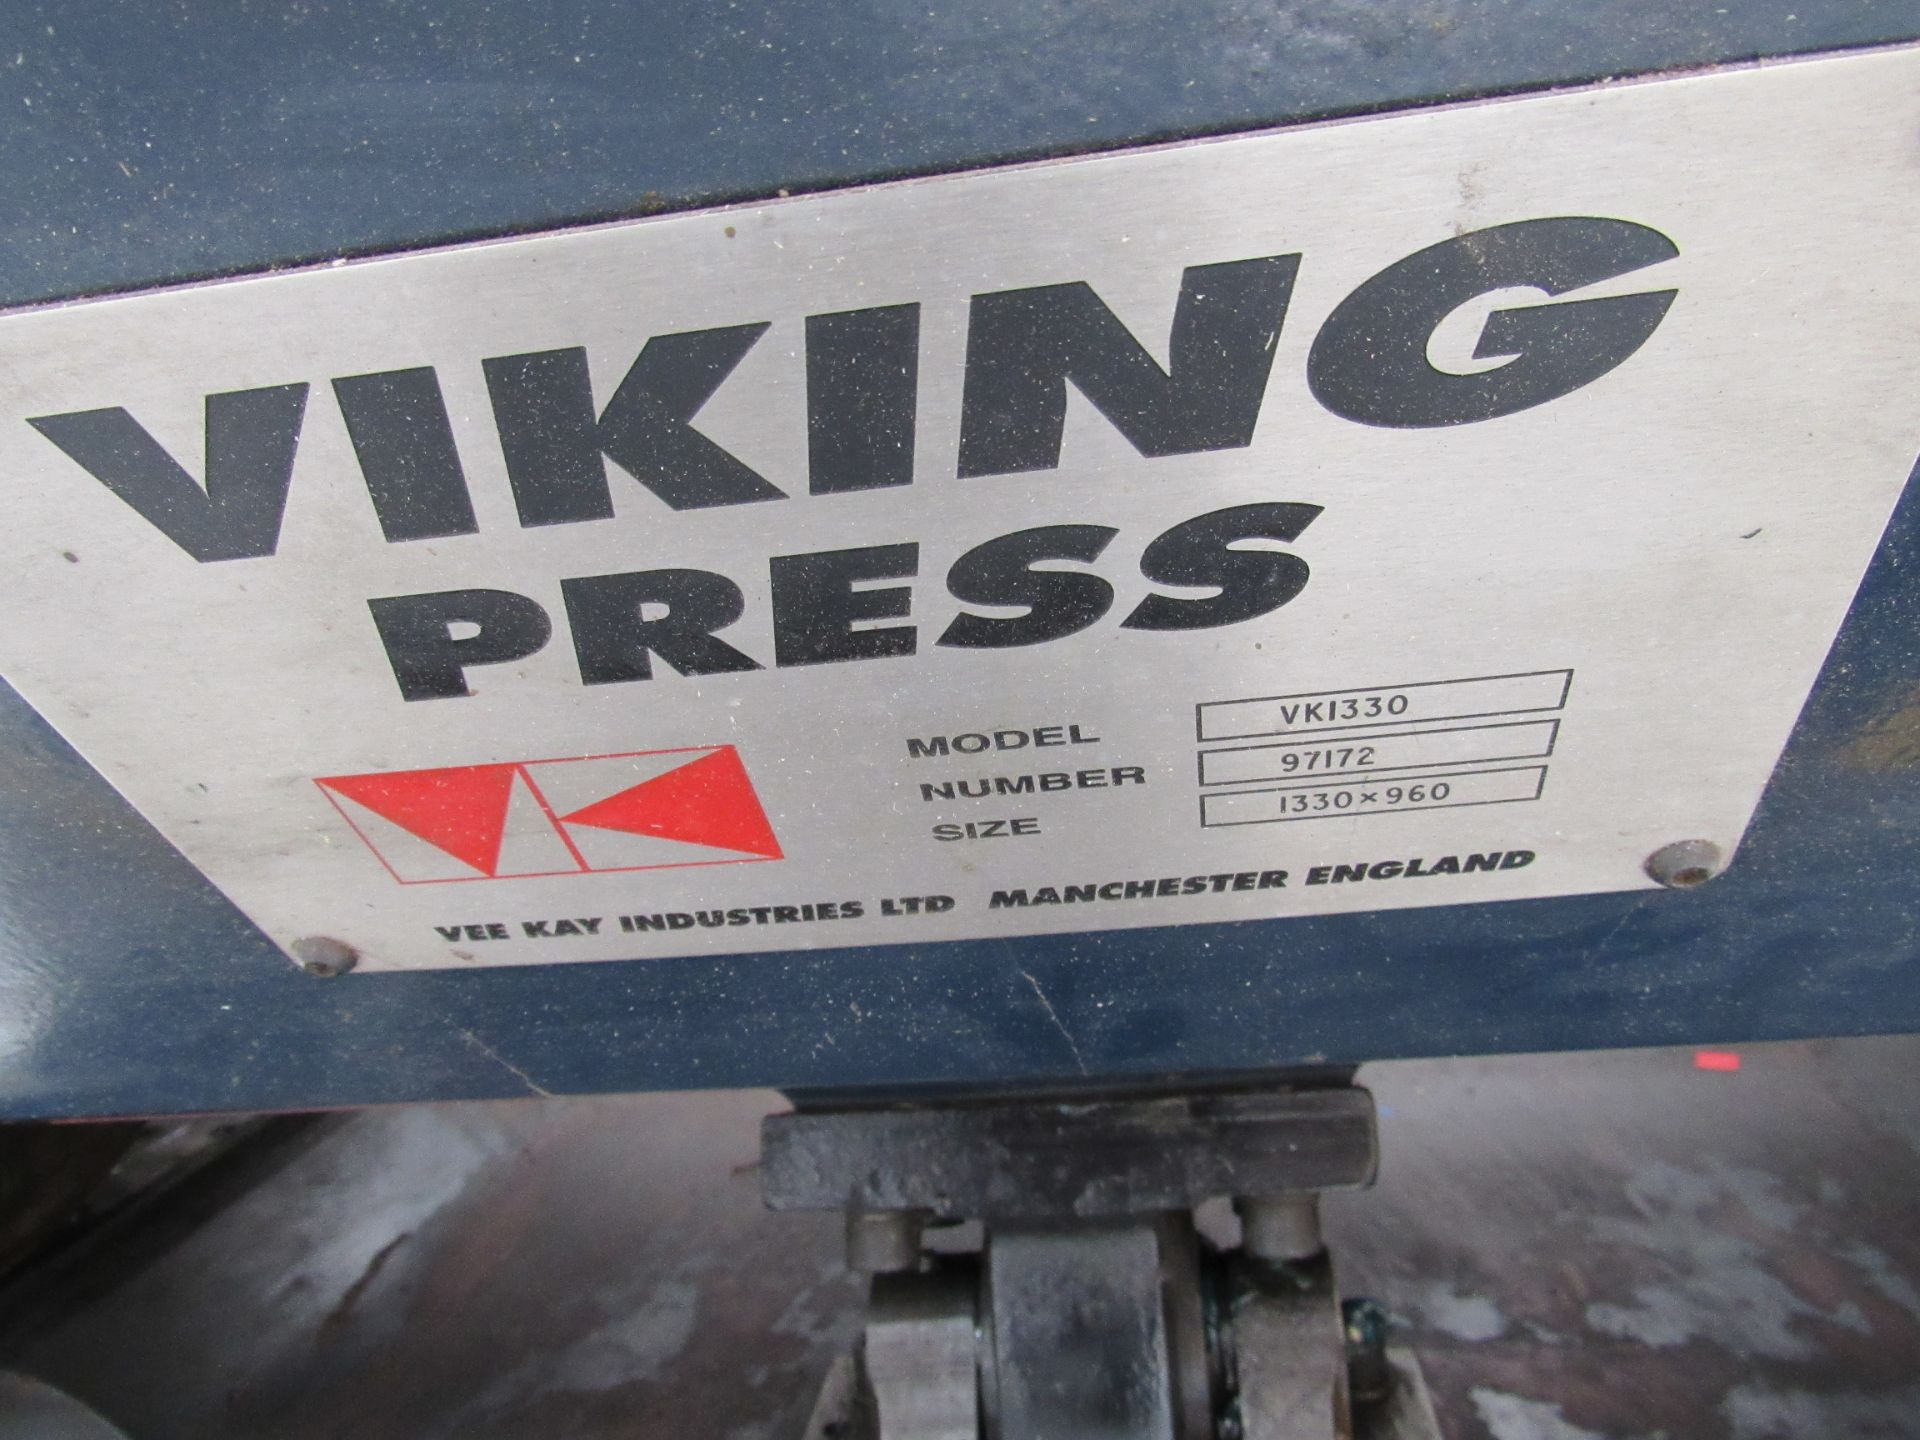 Viking Press VK1330 Cut and Crease Platen 1330 x 960mm Serial Number 97172 - Image 6 of 9